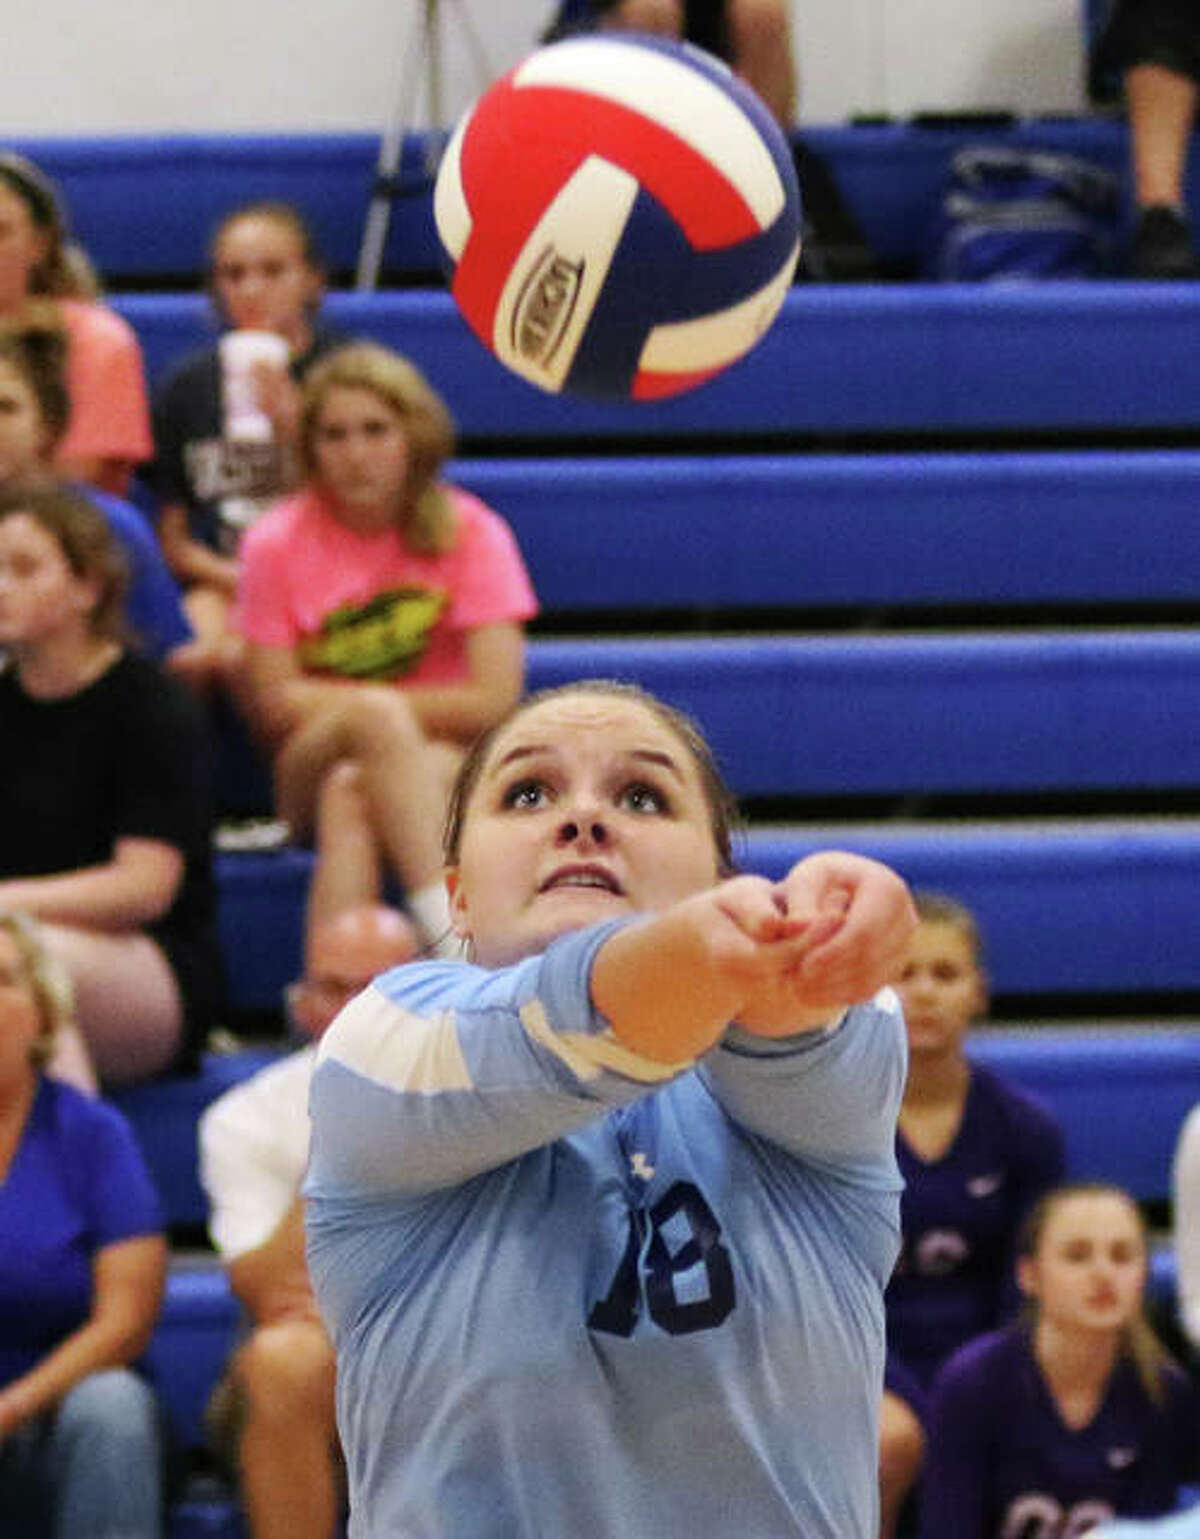 Jersey setter Abbie Droege makes a bump set on Monday at the Roxana Tournament.